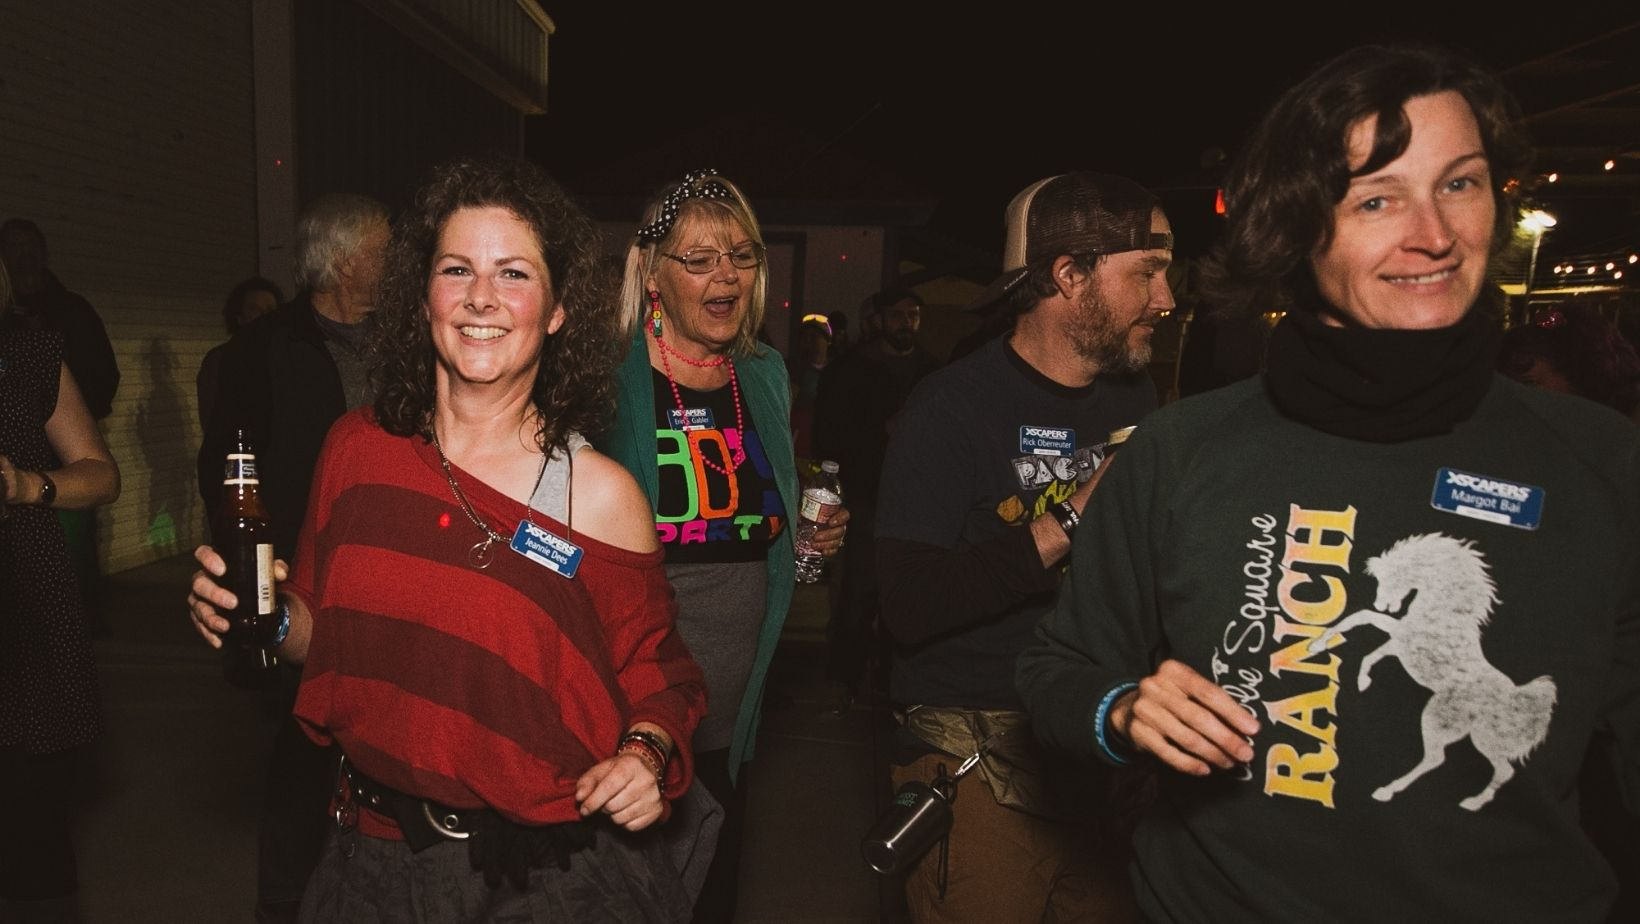 Attendees show off their 80s apparel during 80s night at an Xscapers Convergence